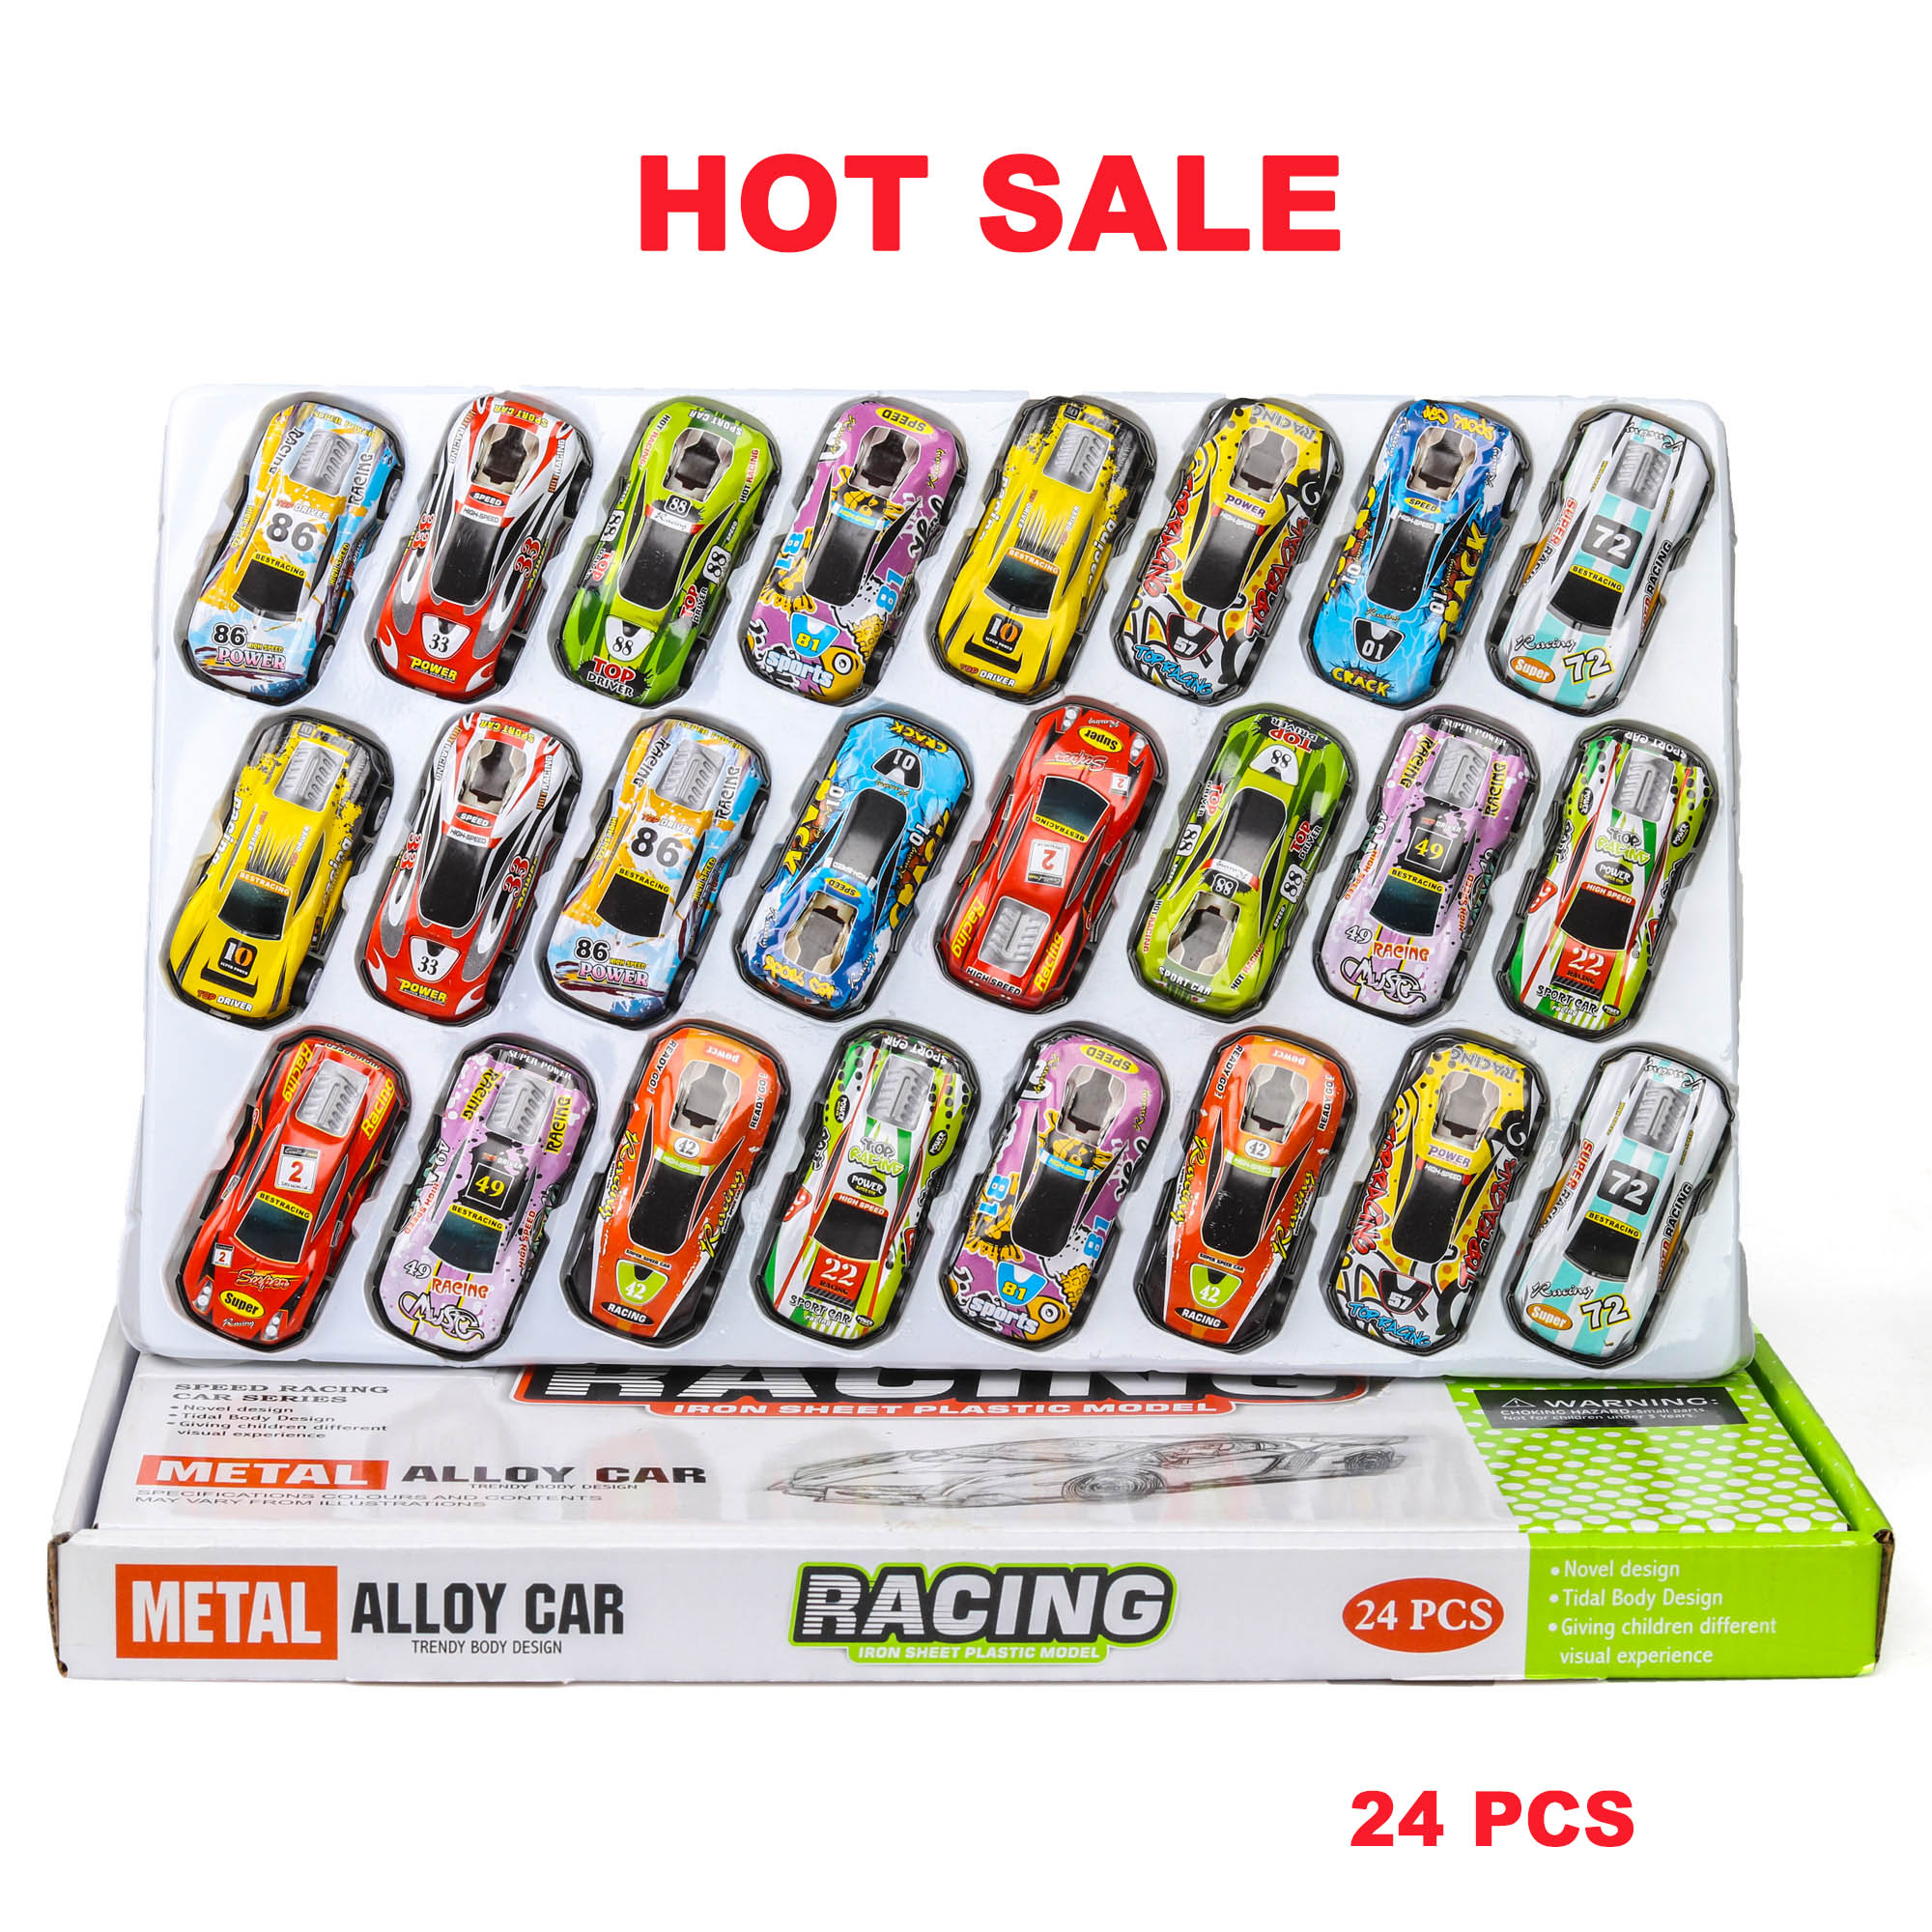 NEW 24 Pcs Hot Wheel Mini Fun Tin Toy Scooter Sports Car Model Pull Back Diecasts Toy Vehicles Metal For Children Car Toys Gift